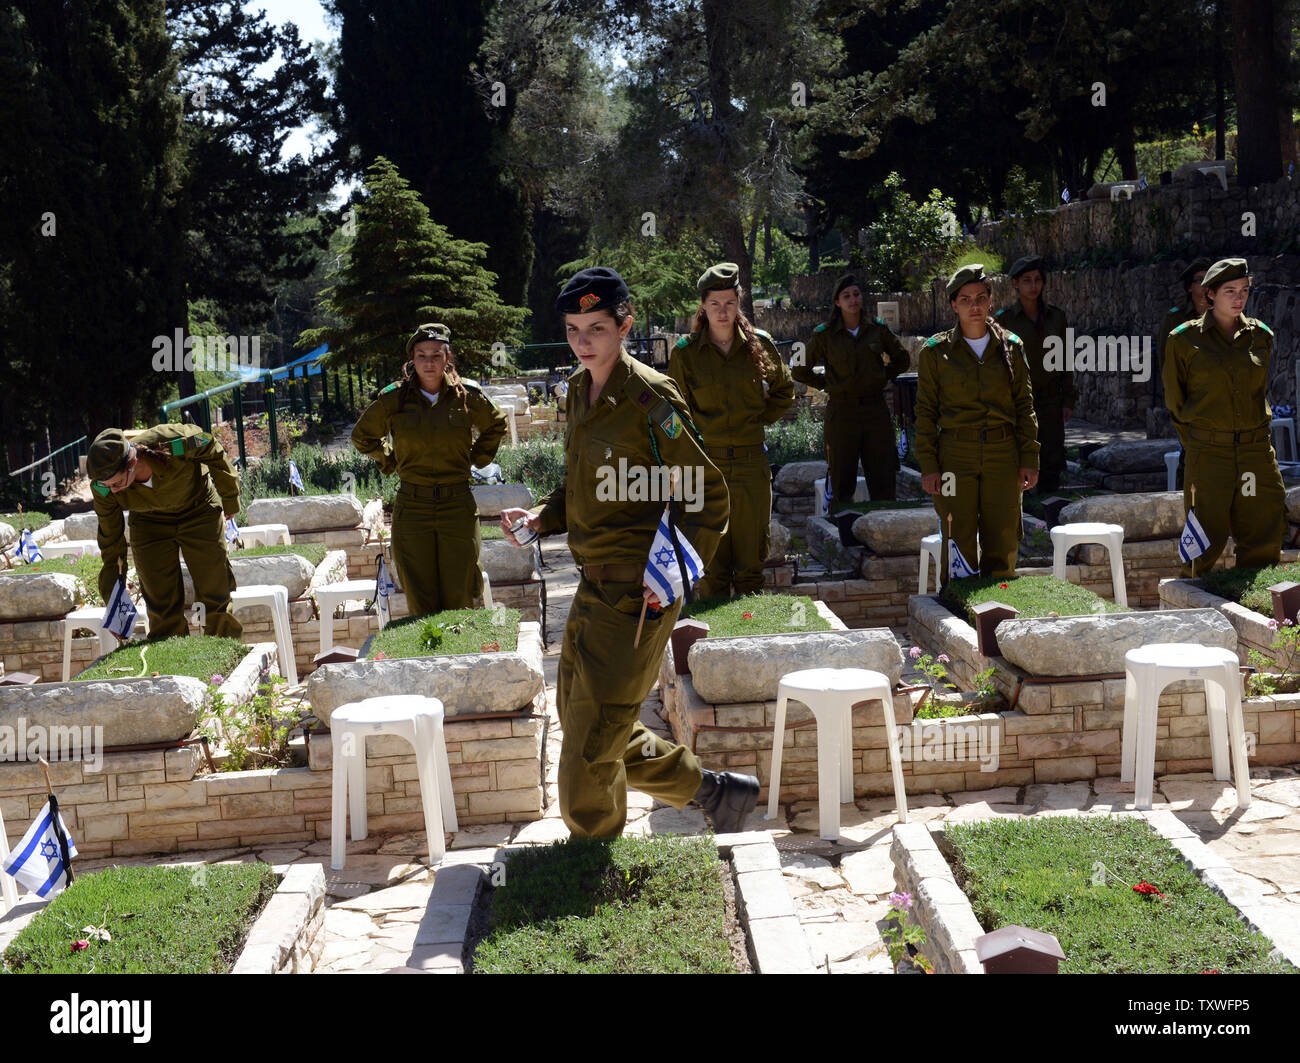 Israeli soldiers decorate the graves of fallen soldiers with national flags with black ribbons for Remembrance Day at the Mt. Herzl Military Cemetery in Jerusalem, Israel, April 14, 2013. Israel's Remembrance Day for fallen soldiers begins at sunset with a one minute siren.  UPI/Debbie Hill Stock Photo